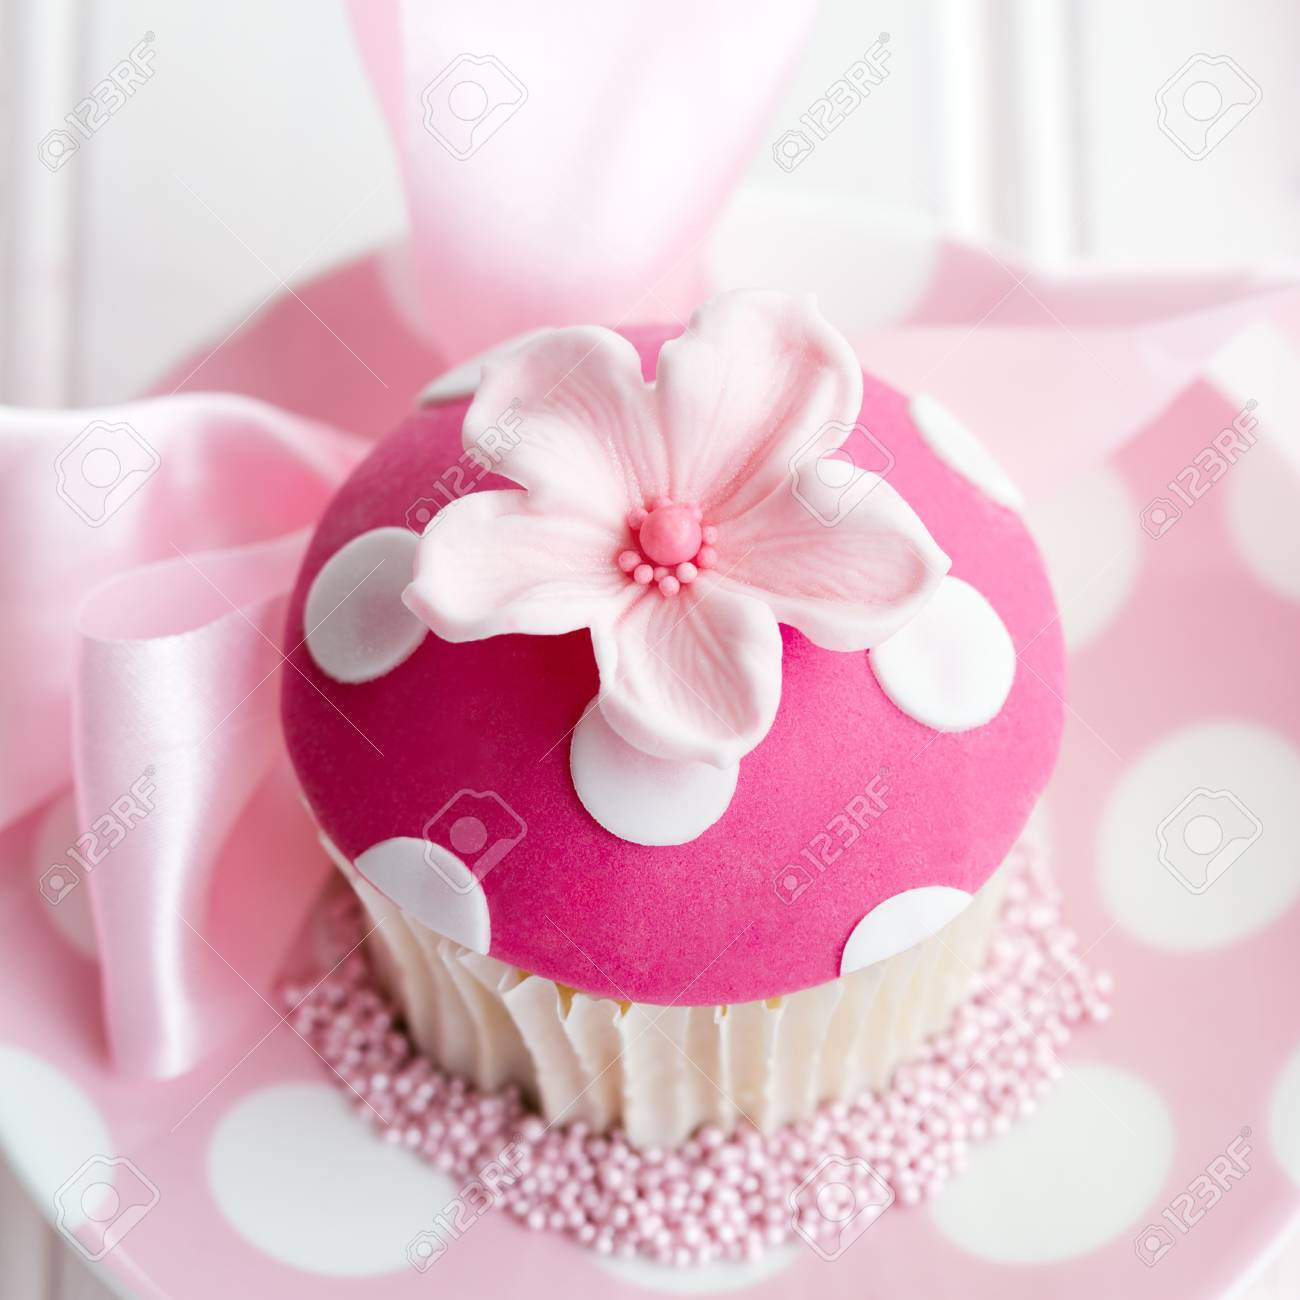 Cupcake Decorated With A Pink Fondant Flower Stock Photo Picture